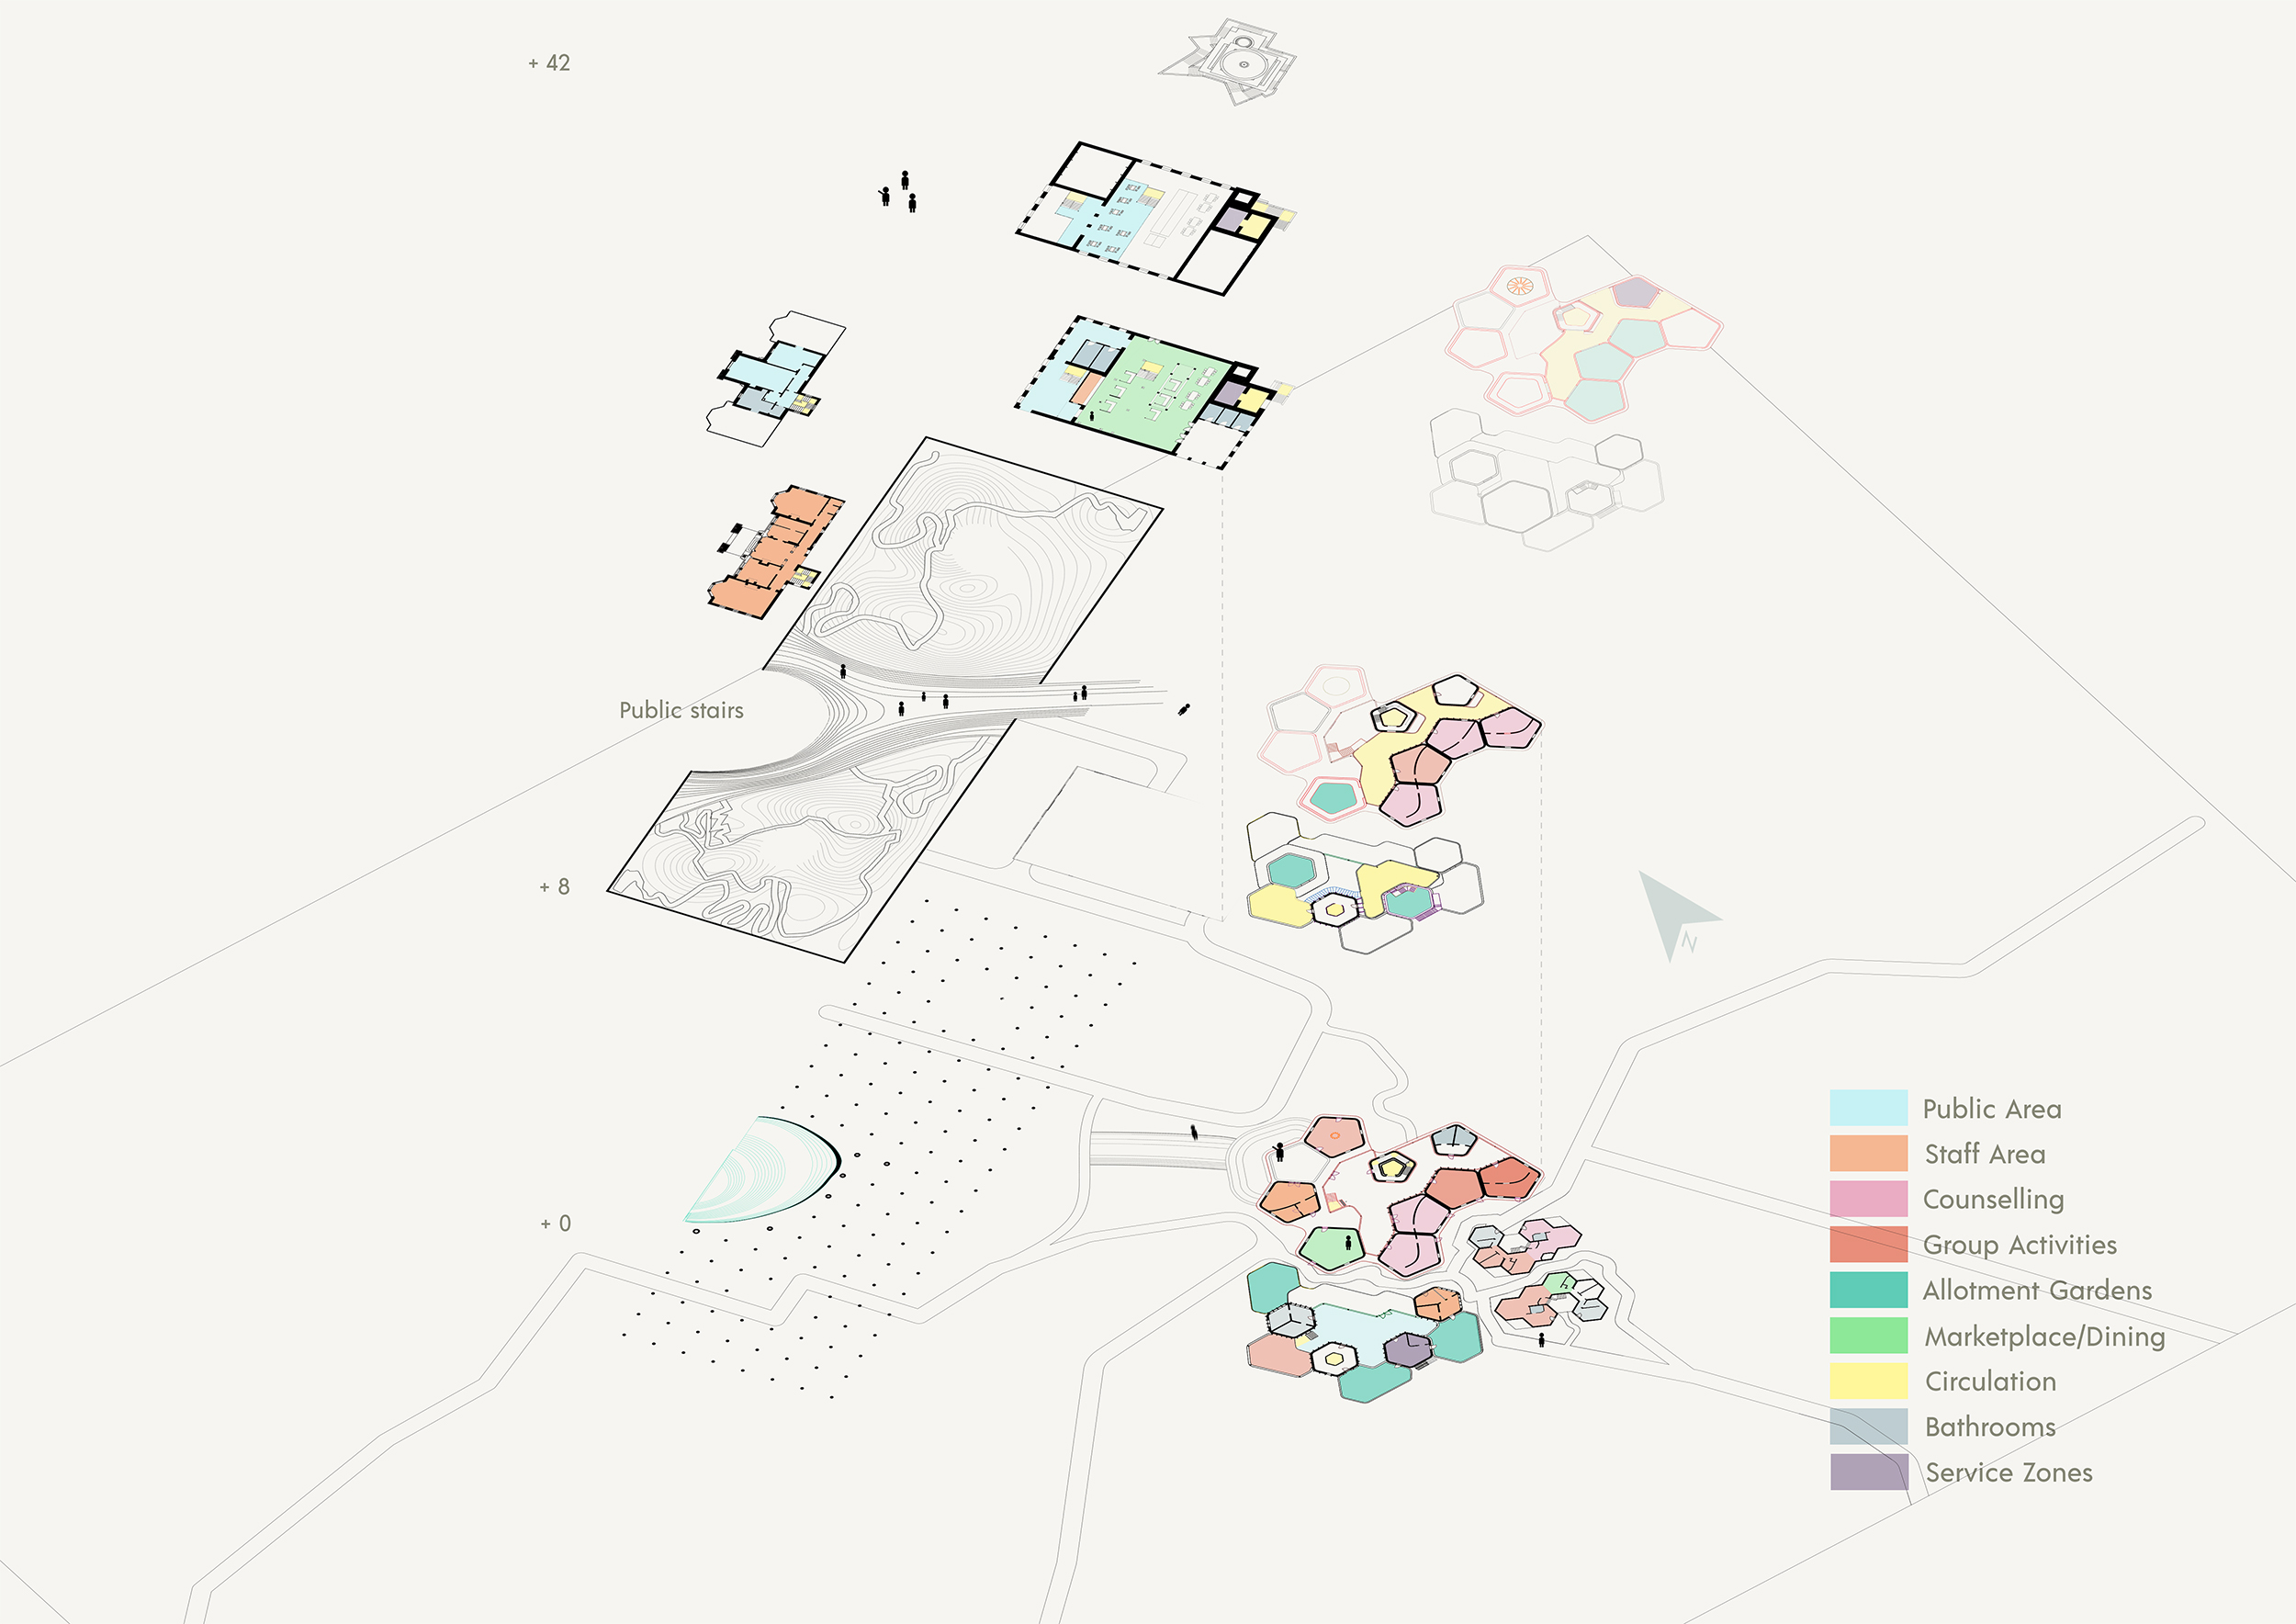 Portfolio Page of an exploded axonometric differentiating between the public areas, staff areas, counselling, group activities, allotment gardens, marketplace, circulation, bathrooms and service zones.